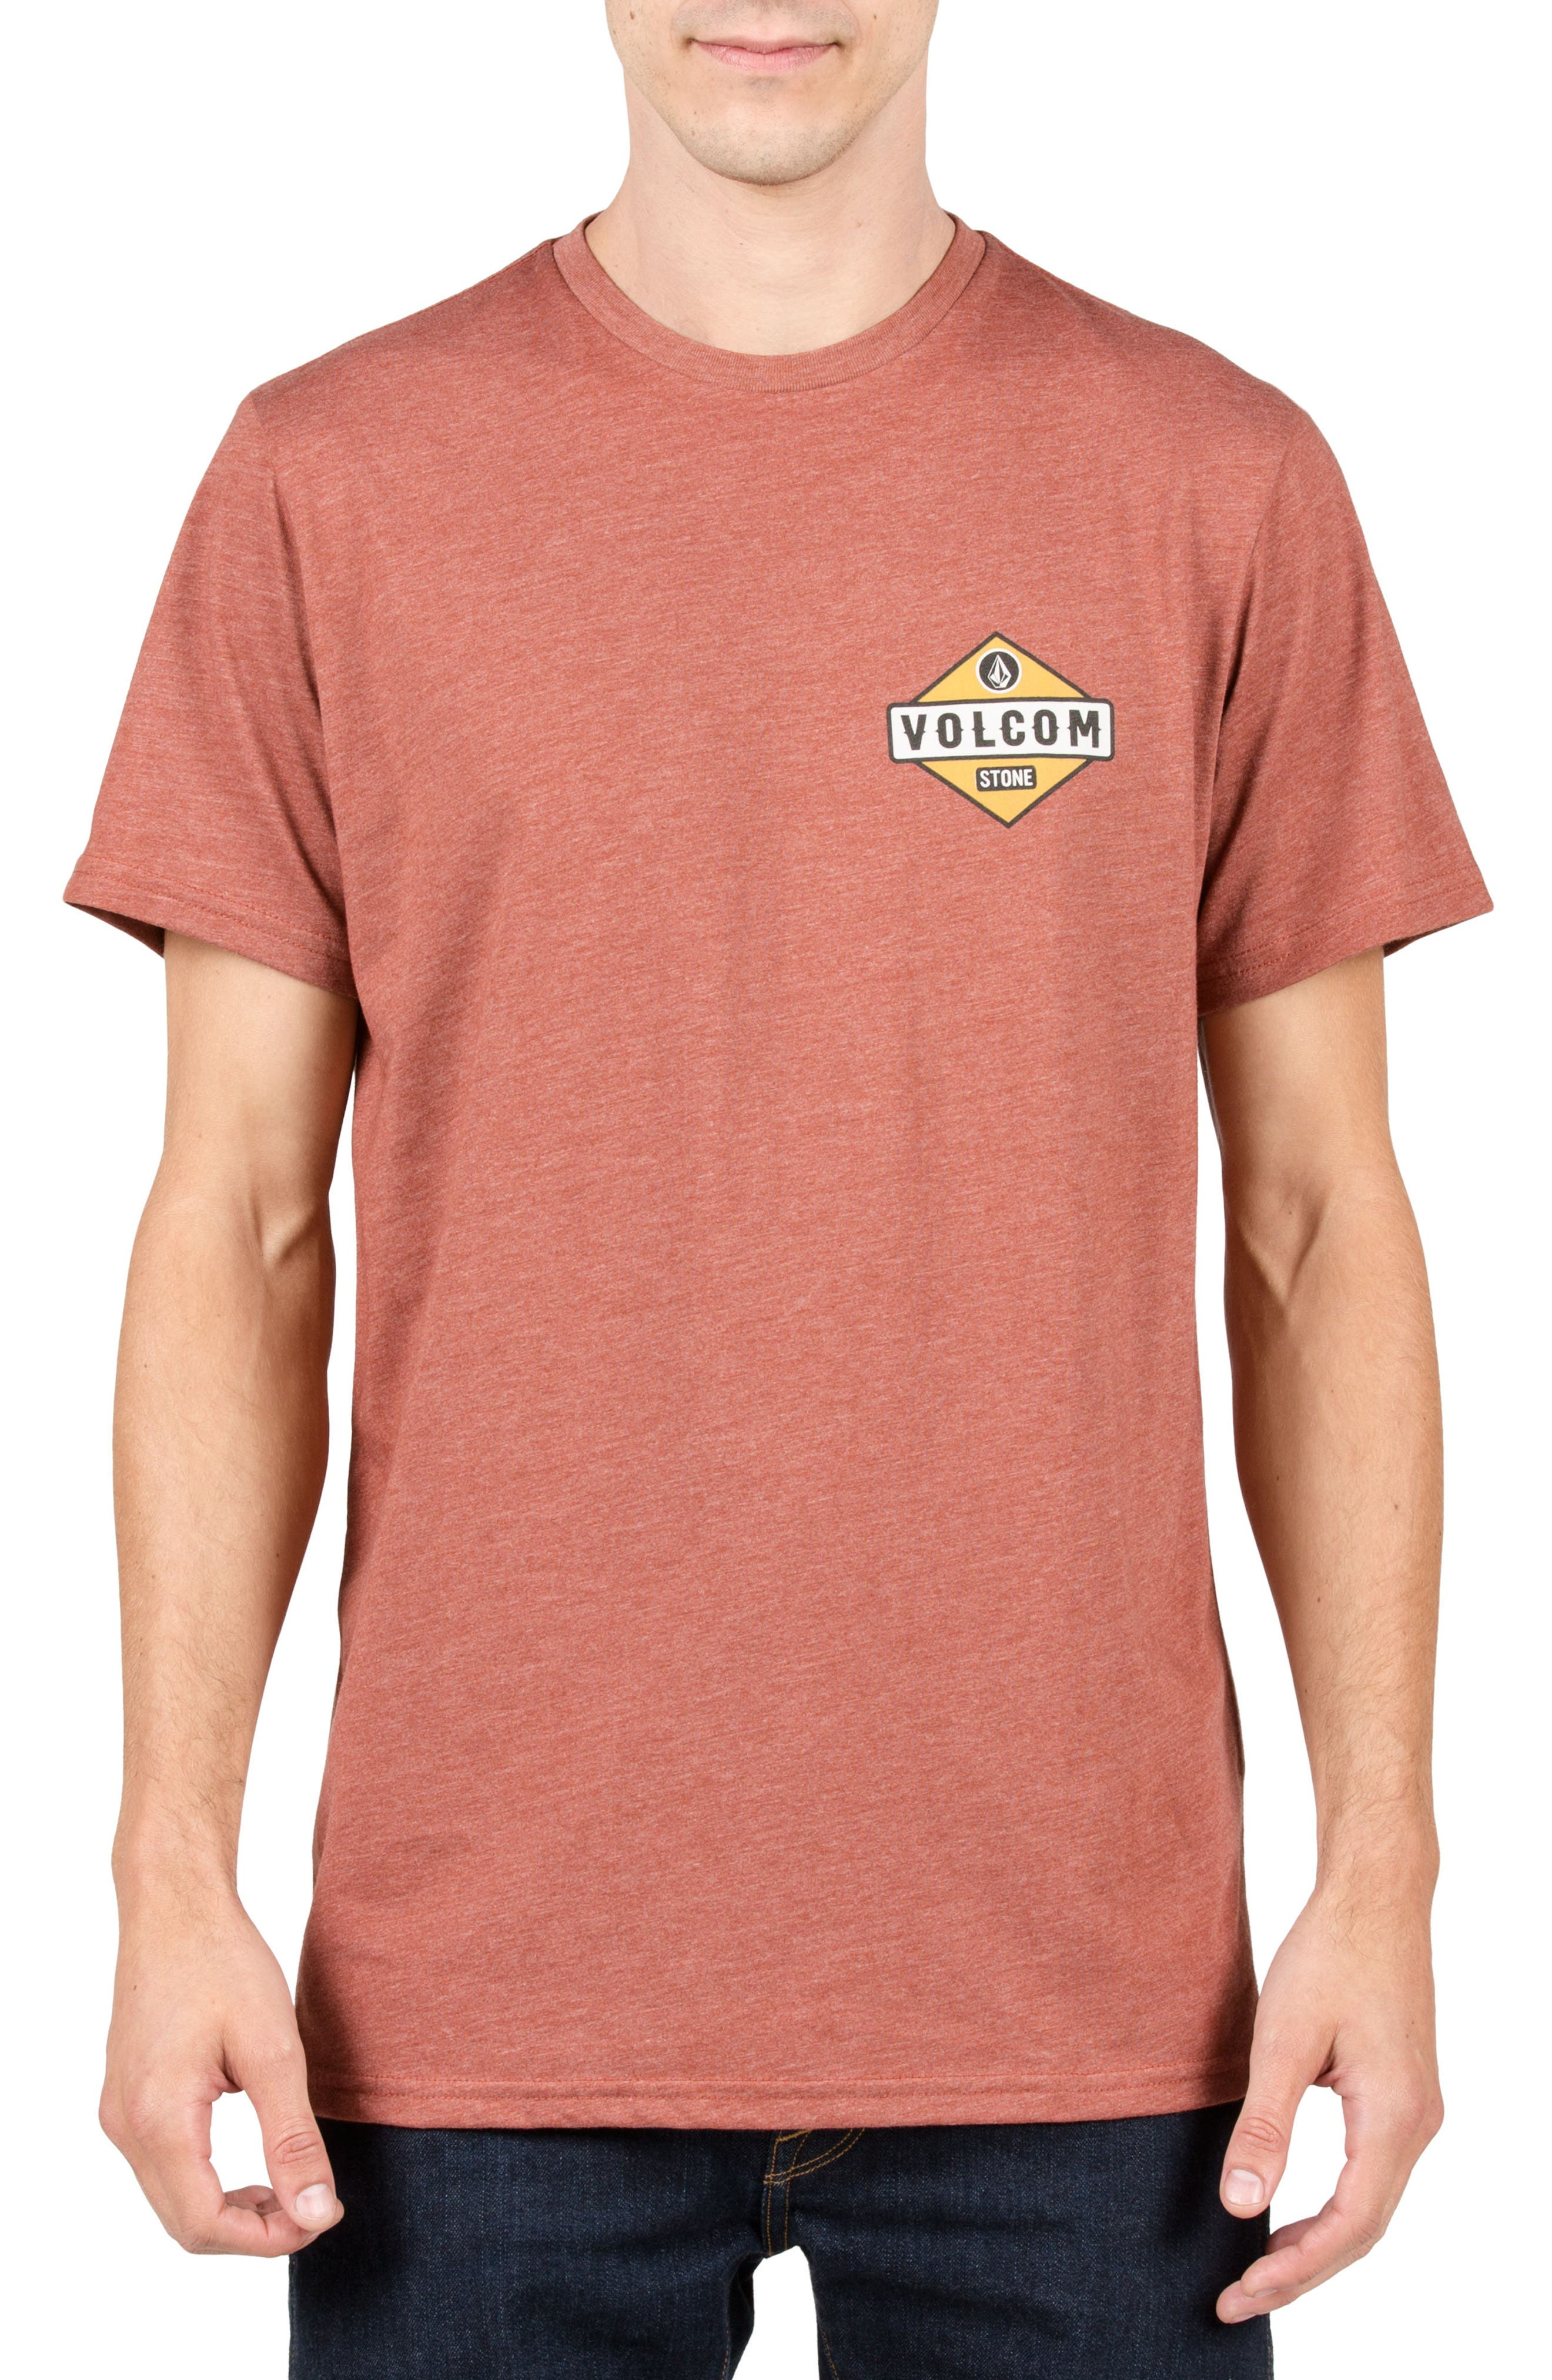 Volcom Caution Graphic T-Shirt